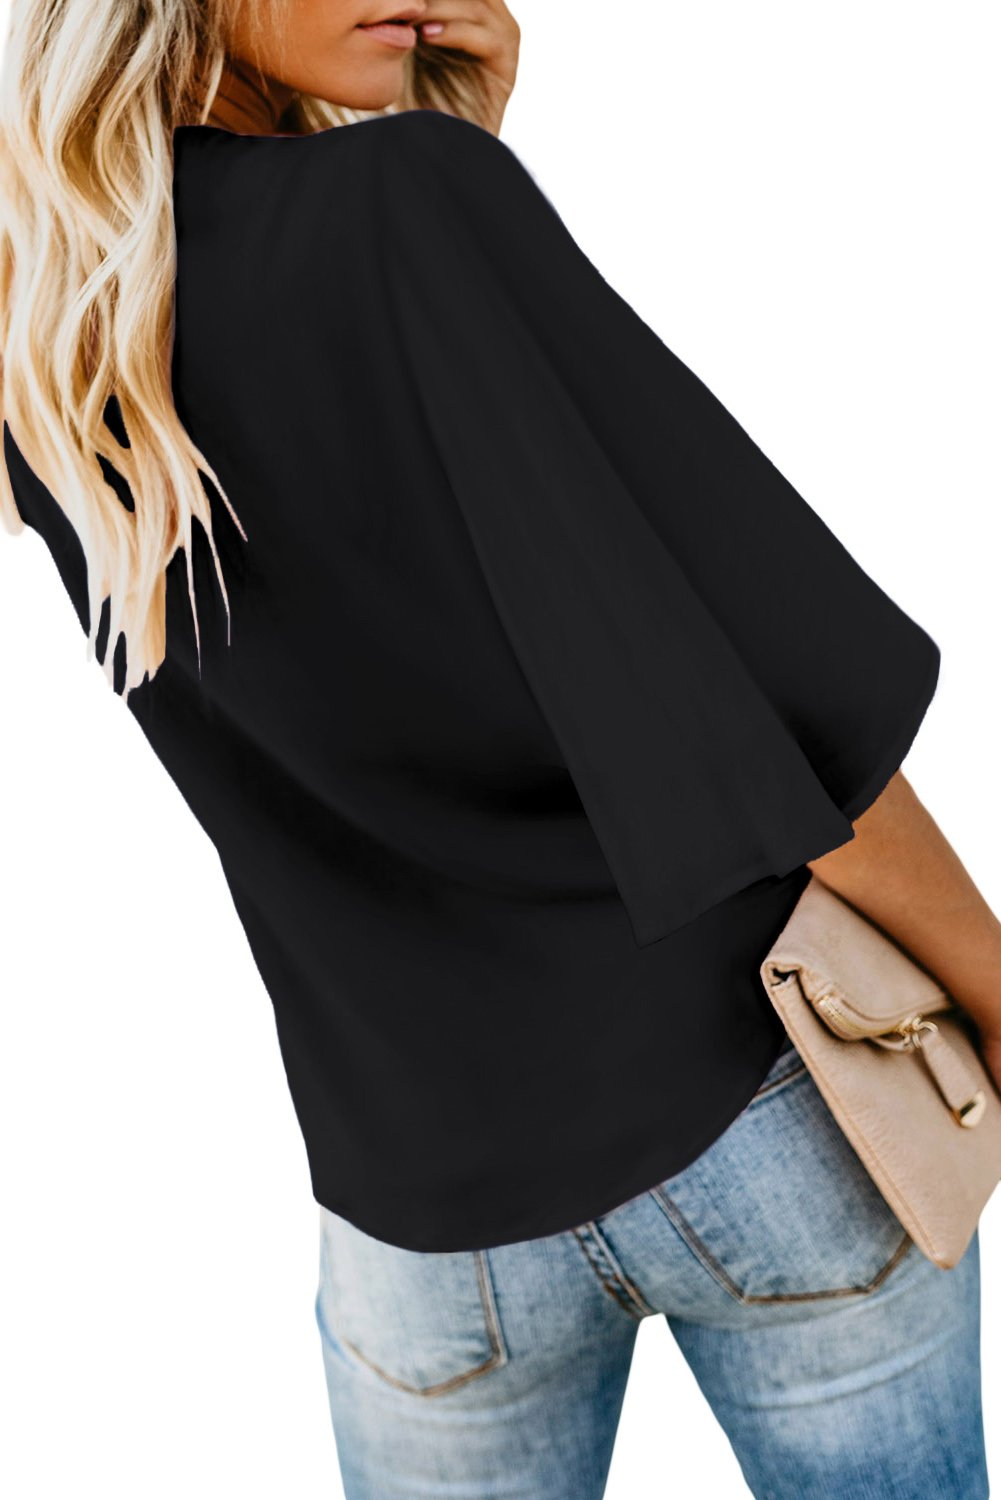 Casual Black Button Tie Blouse Top